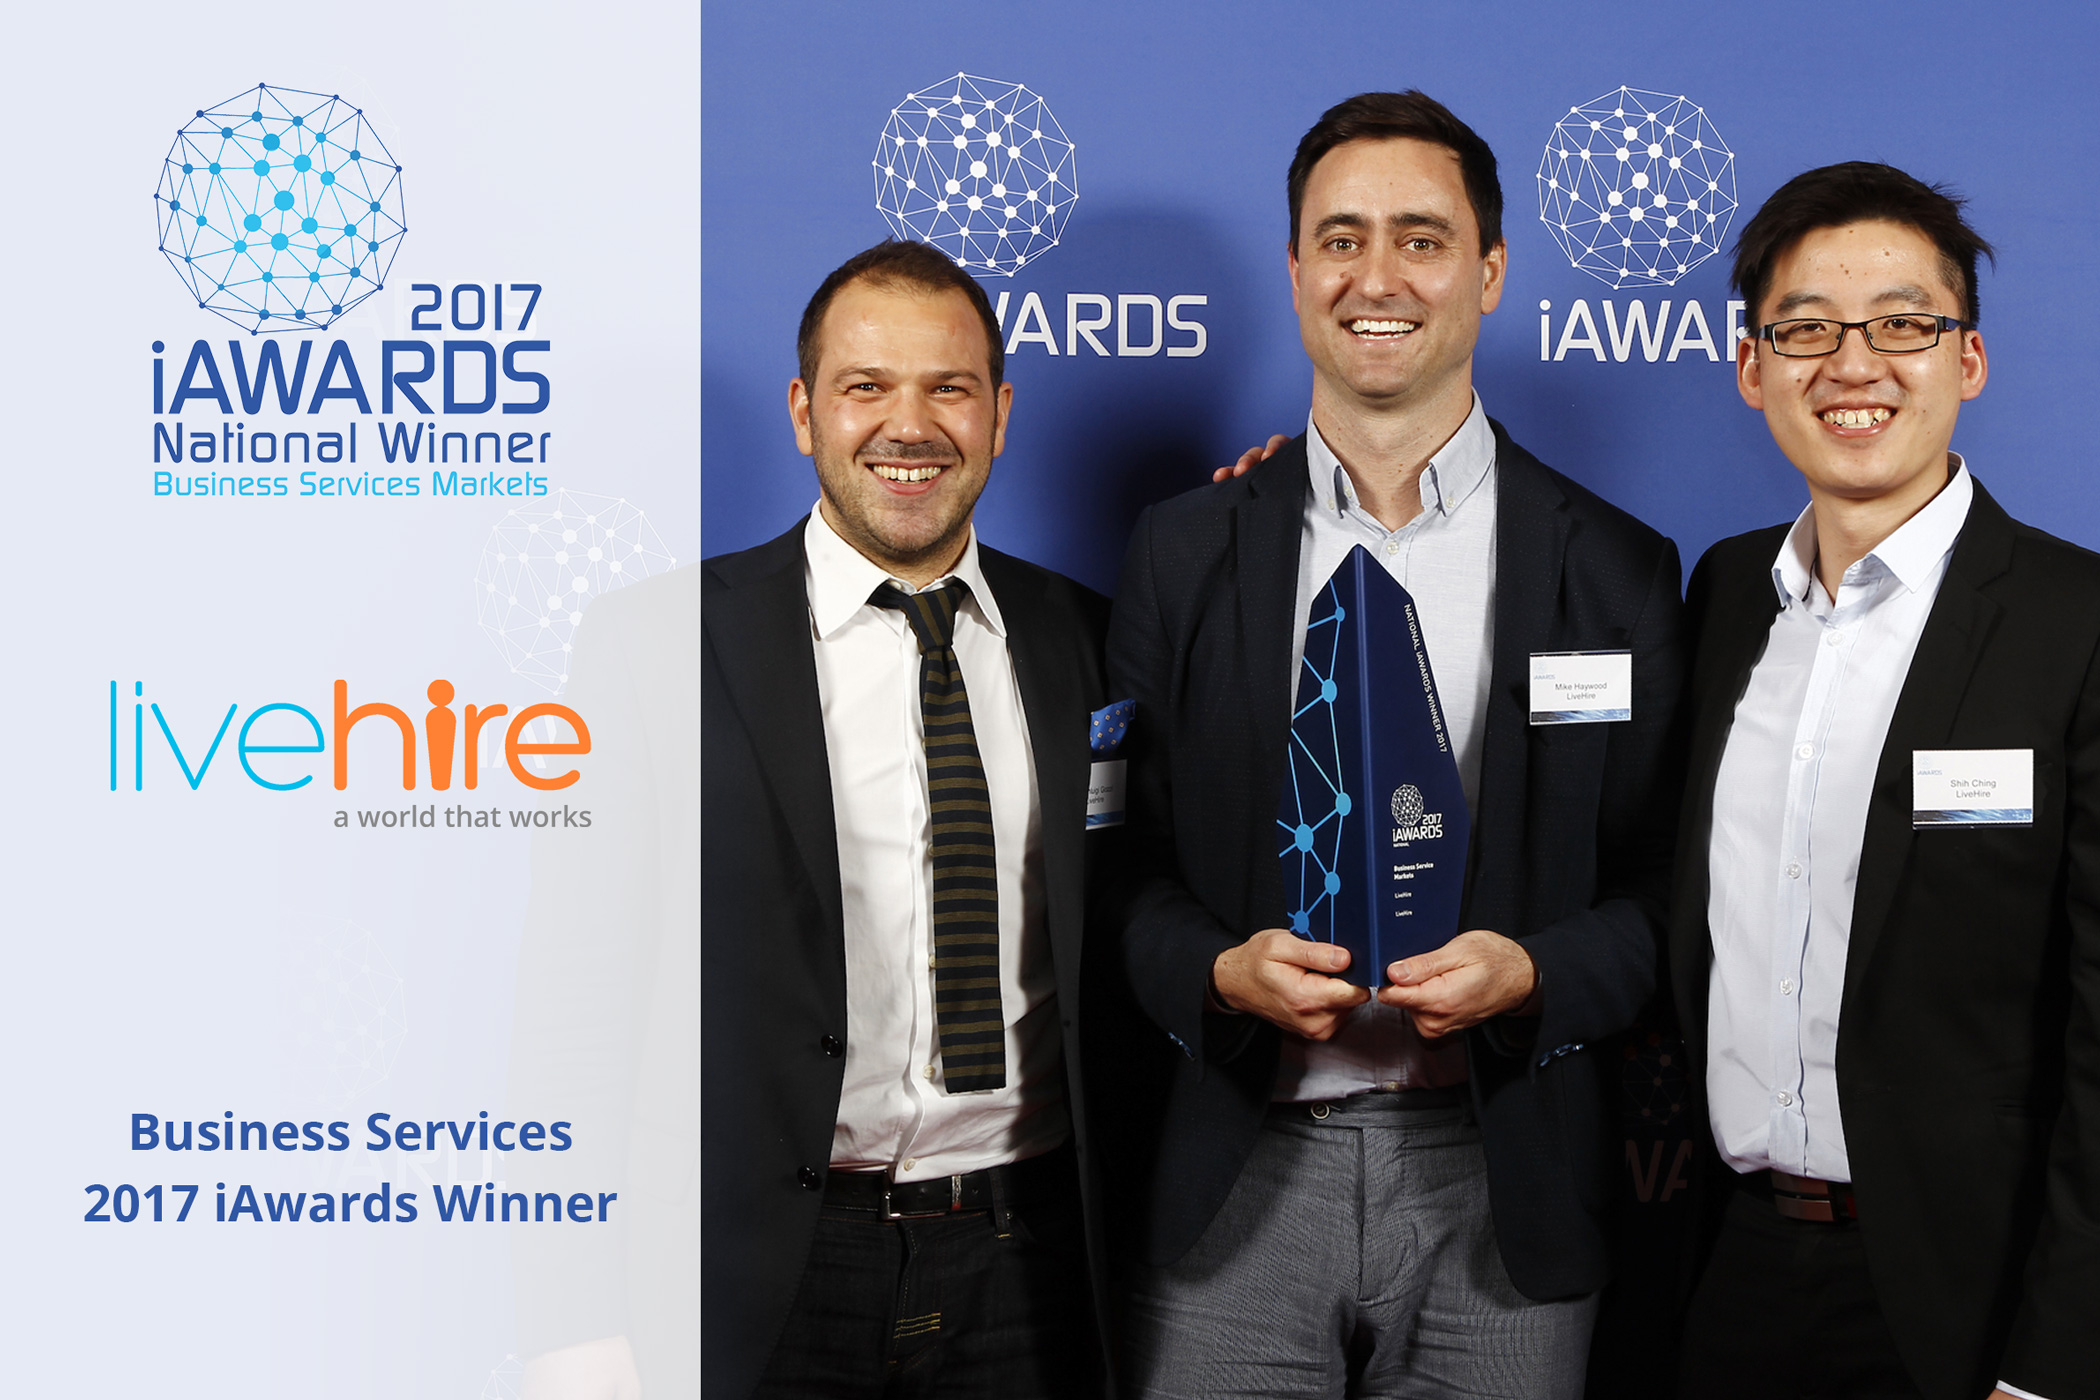 LiveHire wins National Award for Business Services @ 2017 iAwards.